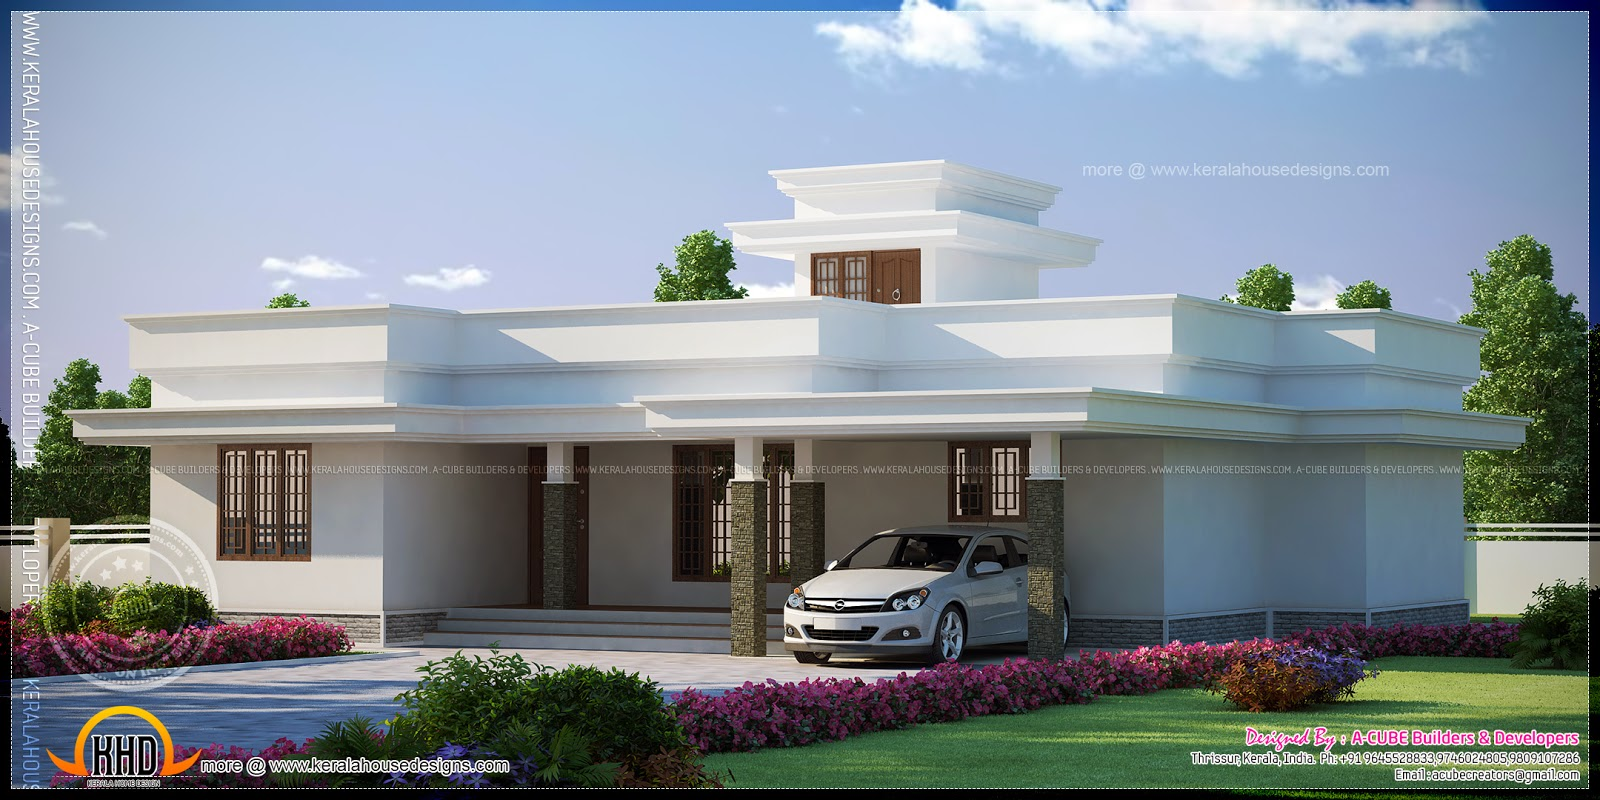 Contemporary flat roof single storied house model kerala for Kerala home design flat roof elevation